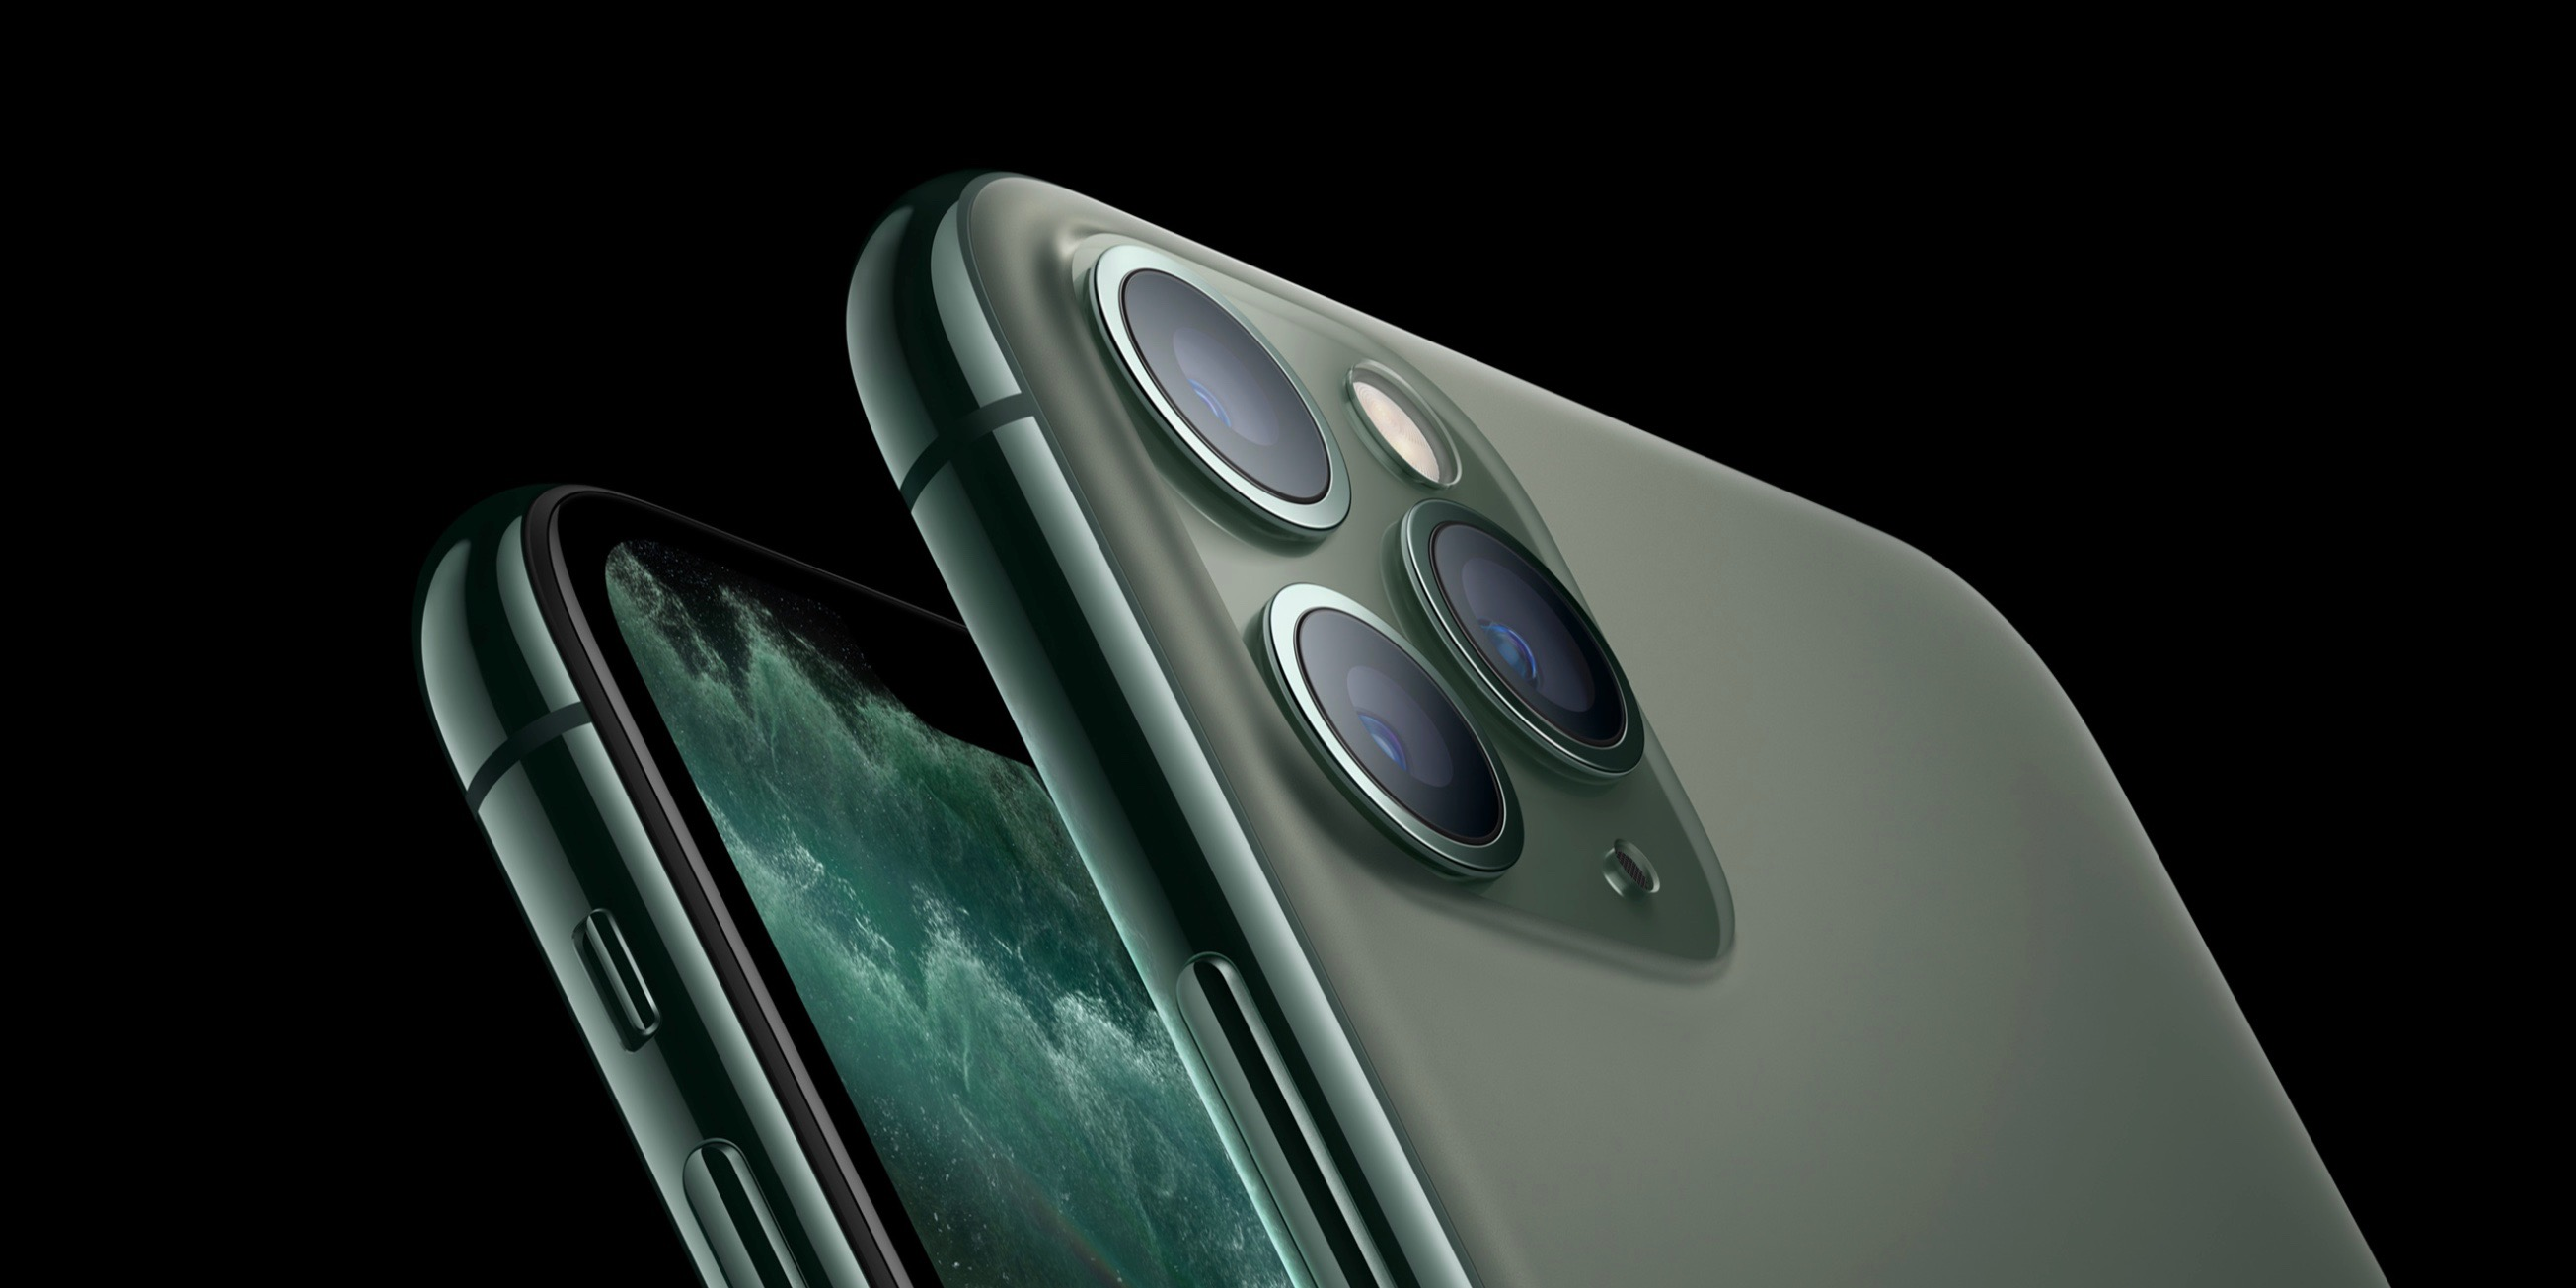 Kuo iPhone 11 demand better than expectations, stronger